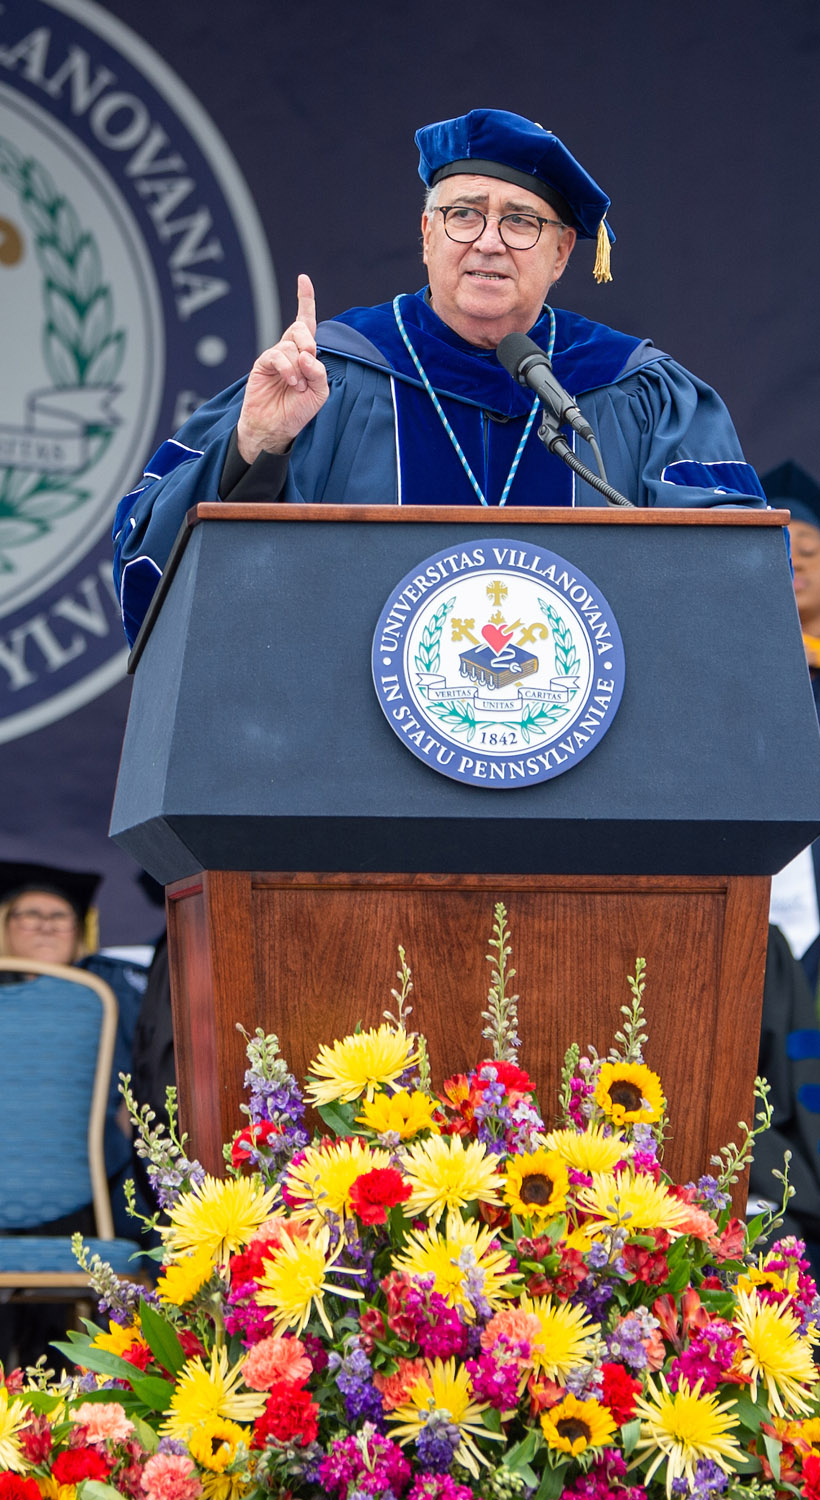 Father Peter Donahue speaking at Commencement